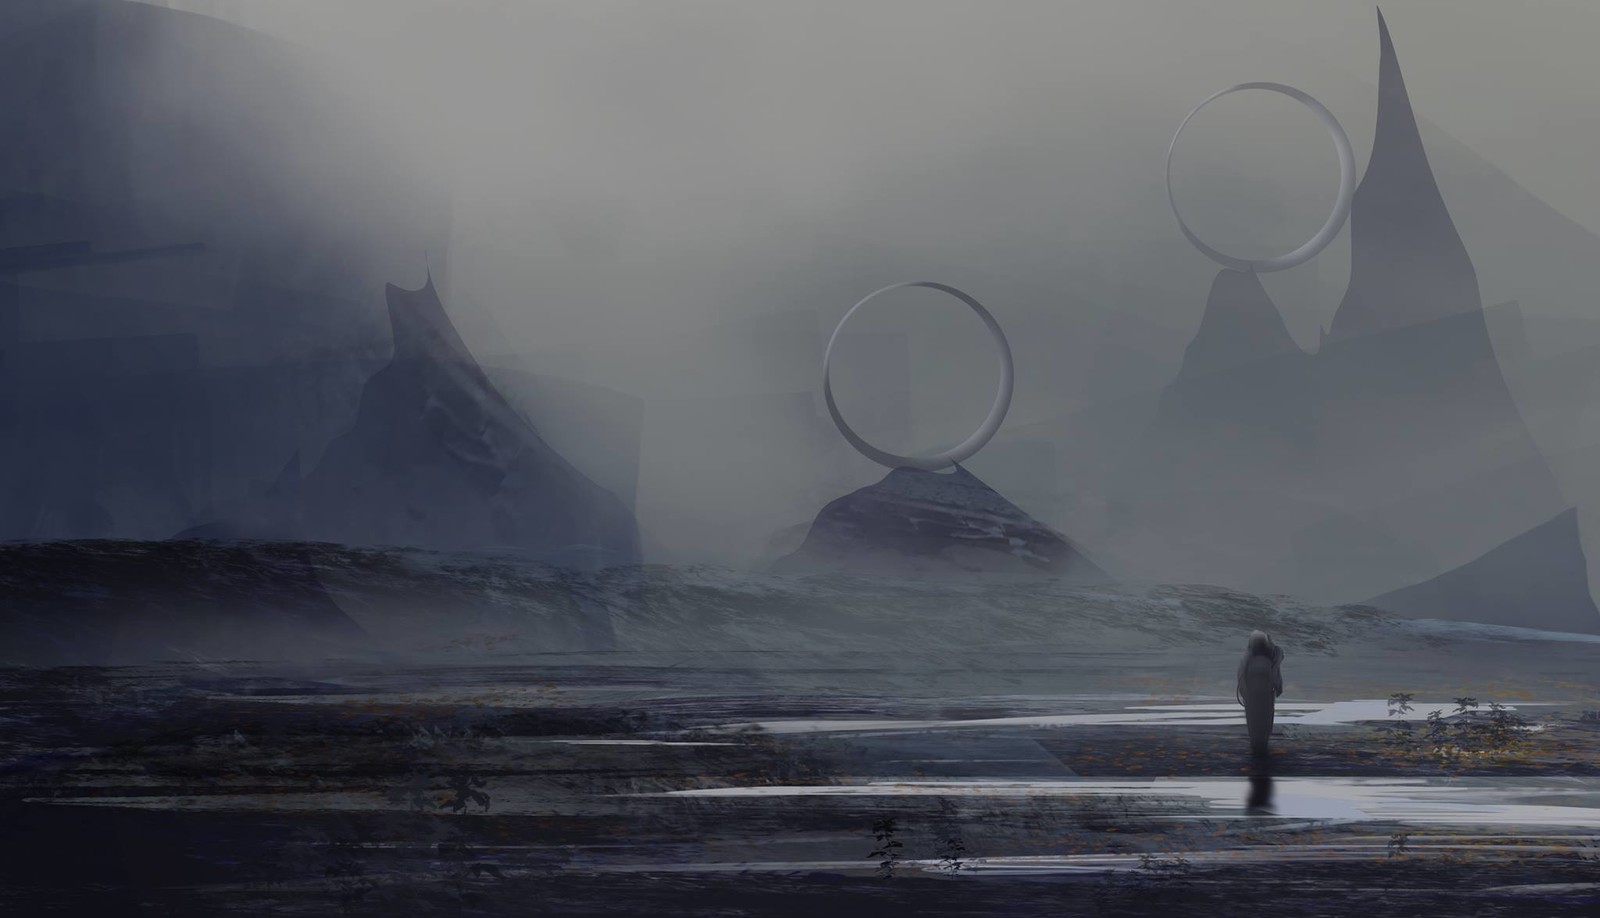 The great rings - 30 min (Daily spitpaint)